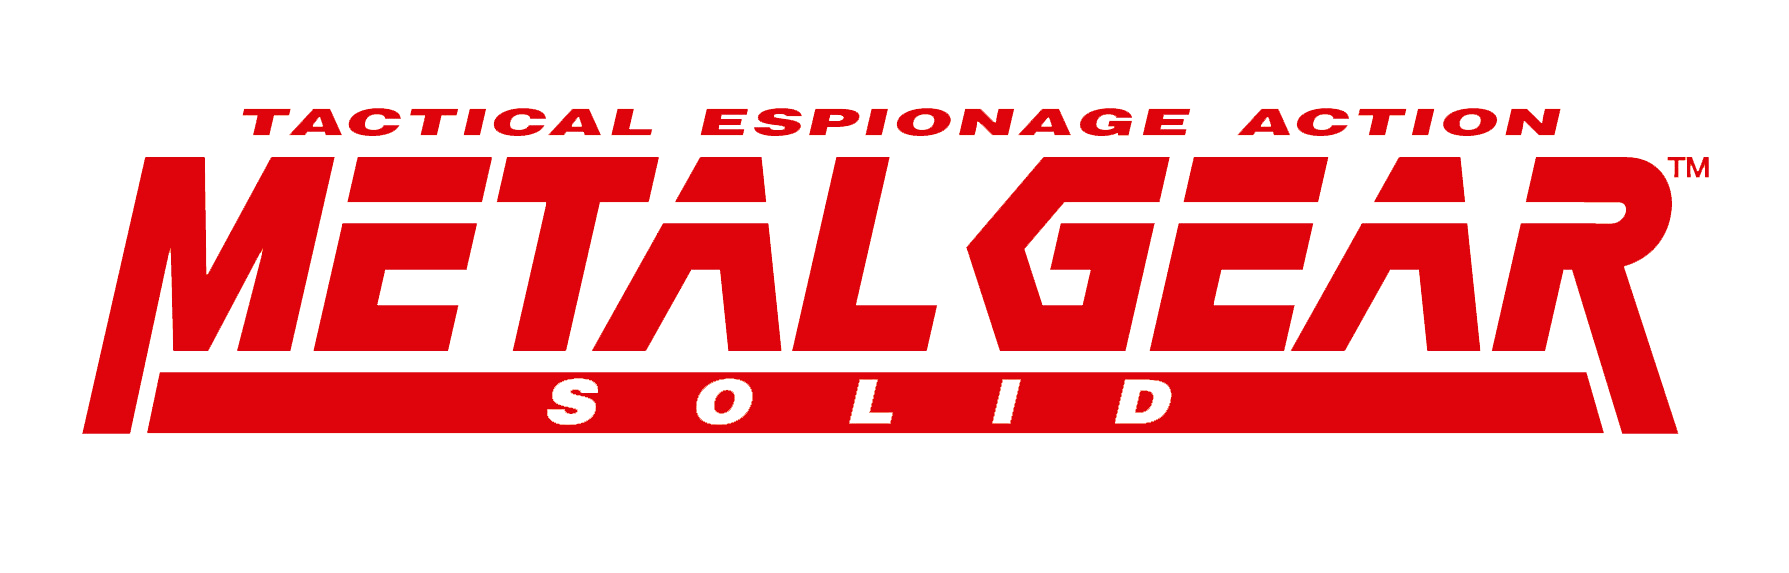 File:Metal Gear Solid logo.png.